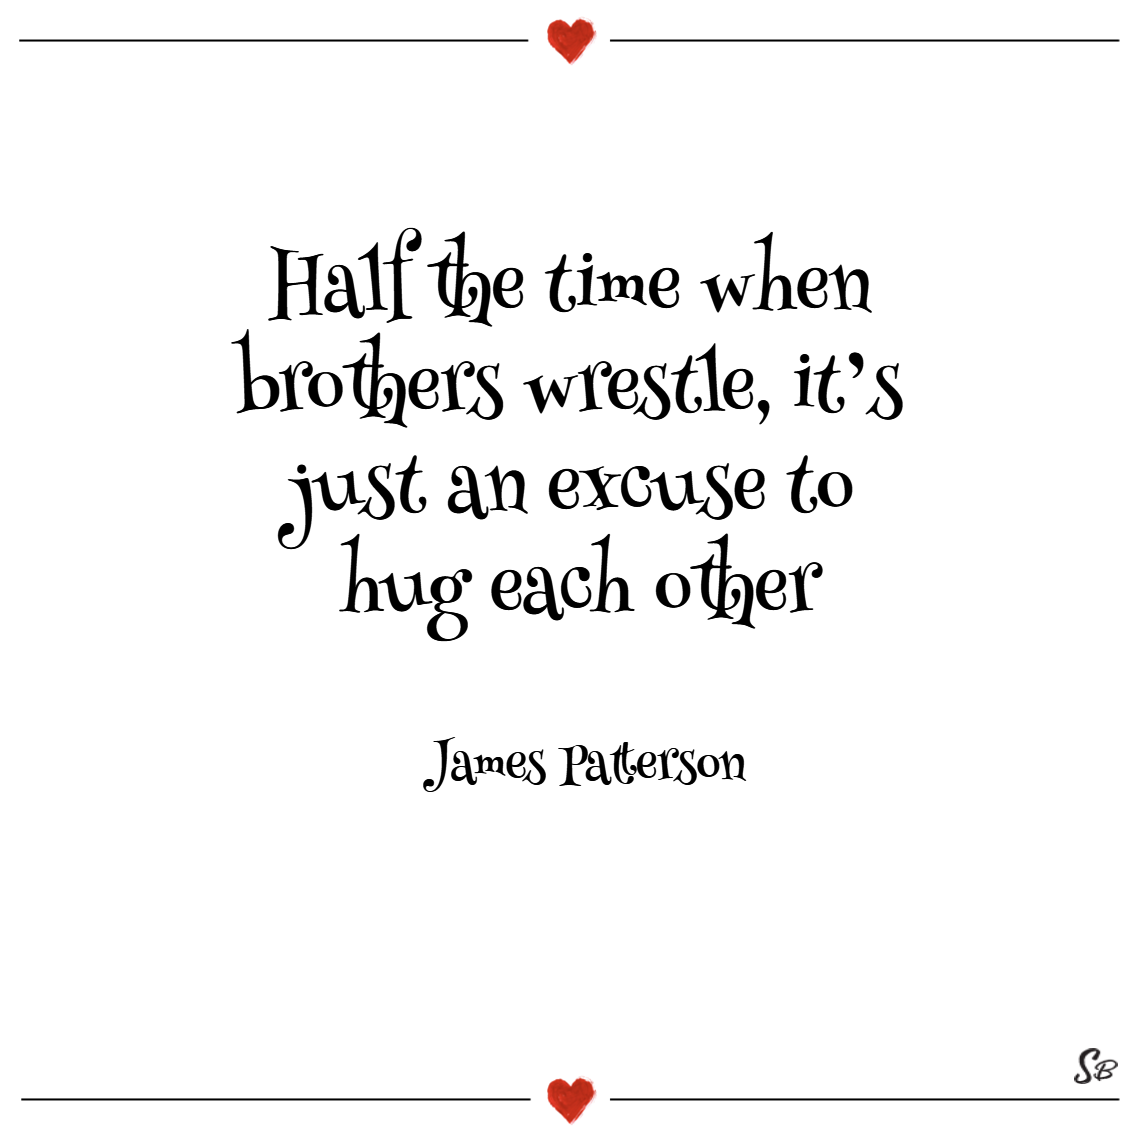 Half the time when brothers wrestle, it's just an excuse to hug each other. – james patterson (1)